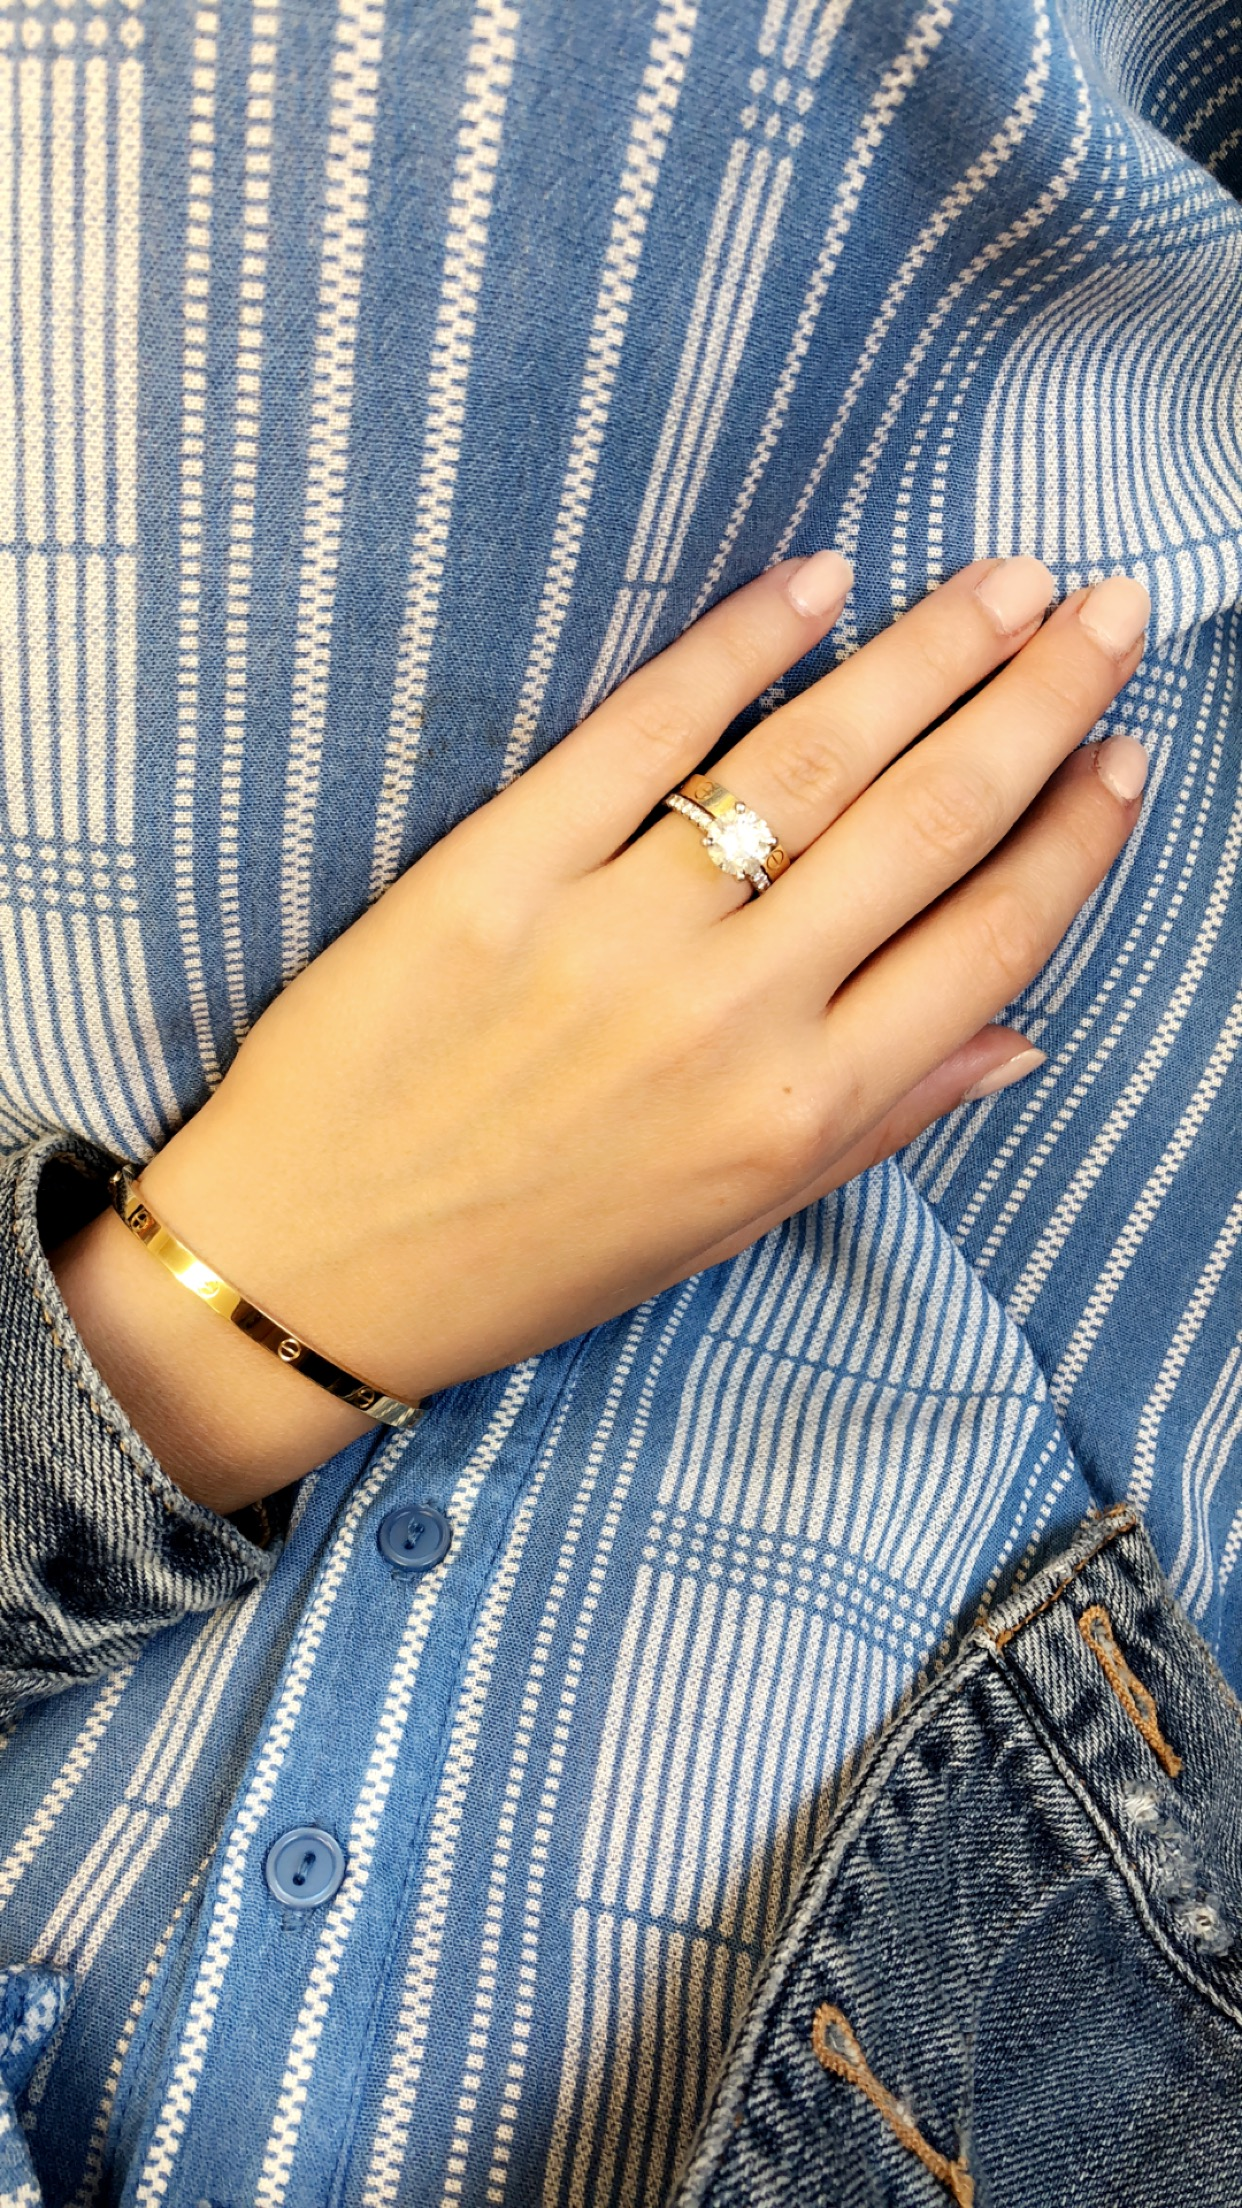 cartier love bracelet and ring, small sia mia.JPG